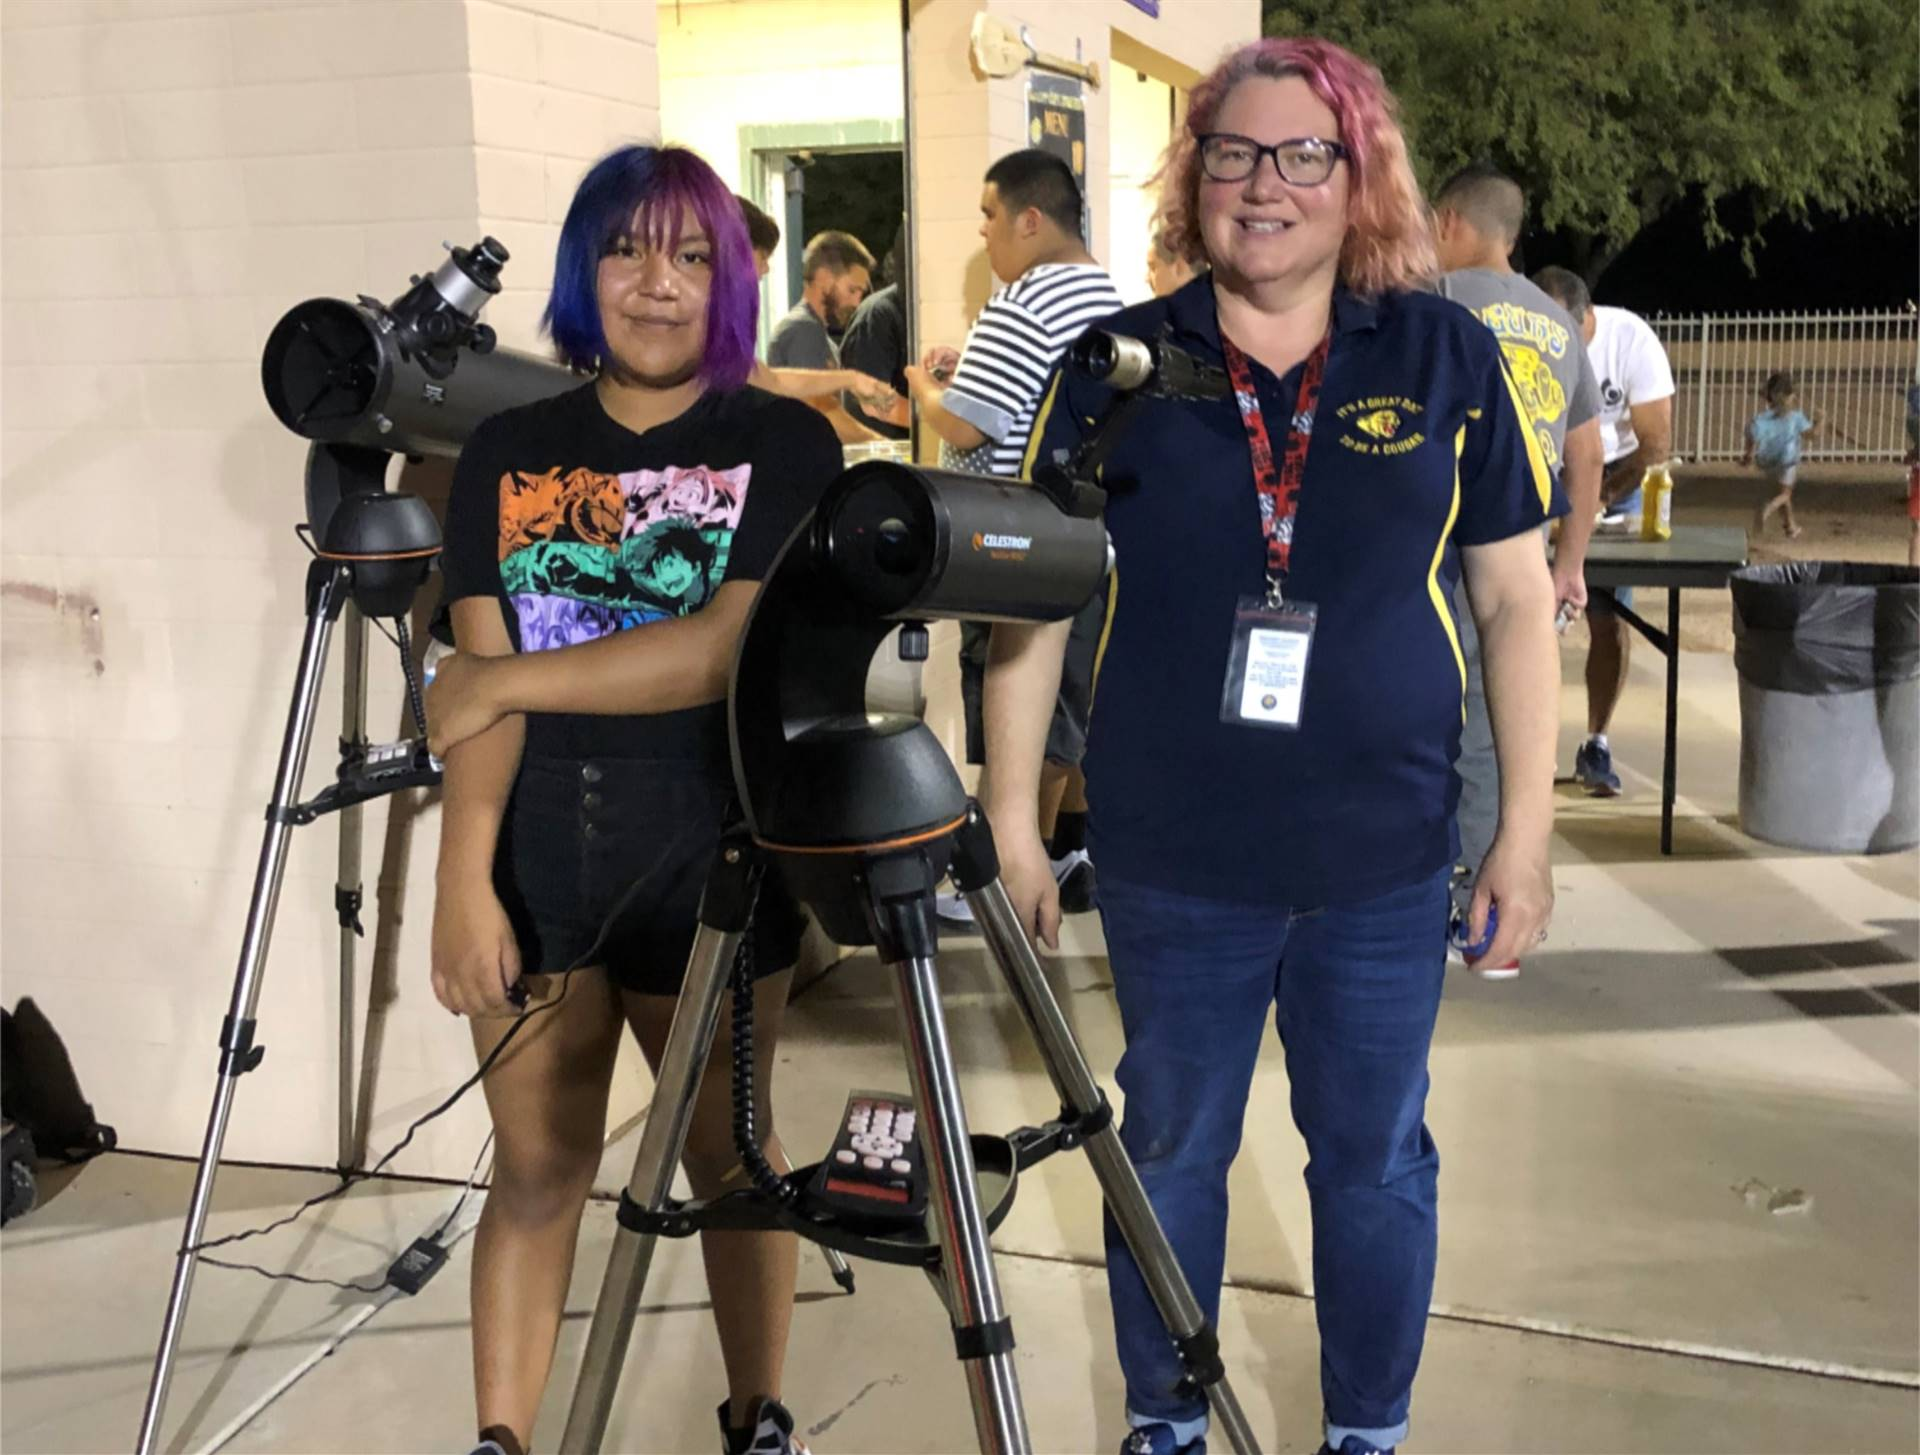 CG-AstronomyClubHomecoming20191120Crop